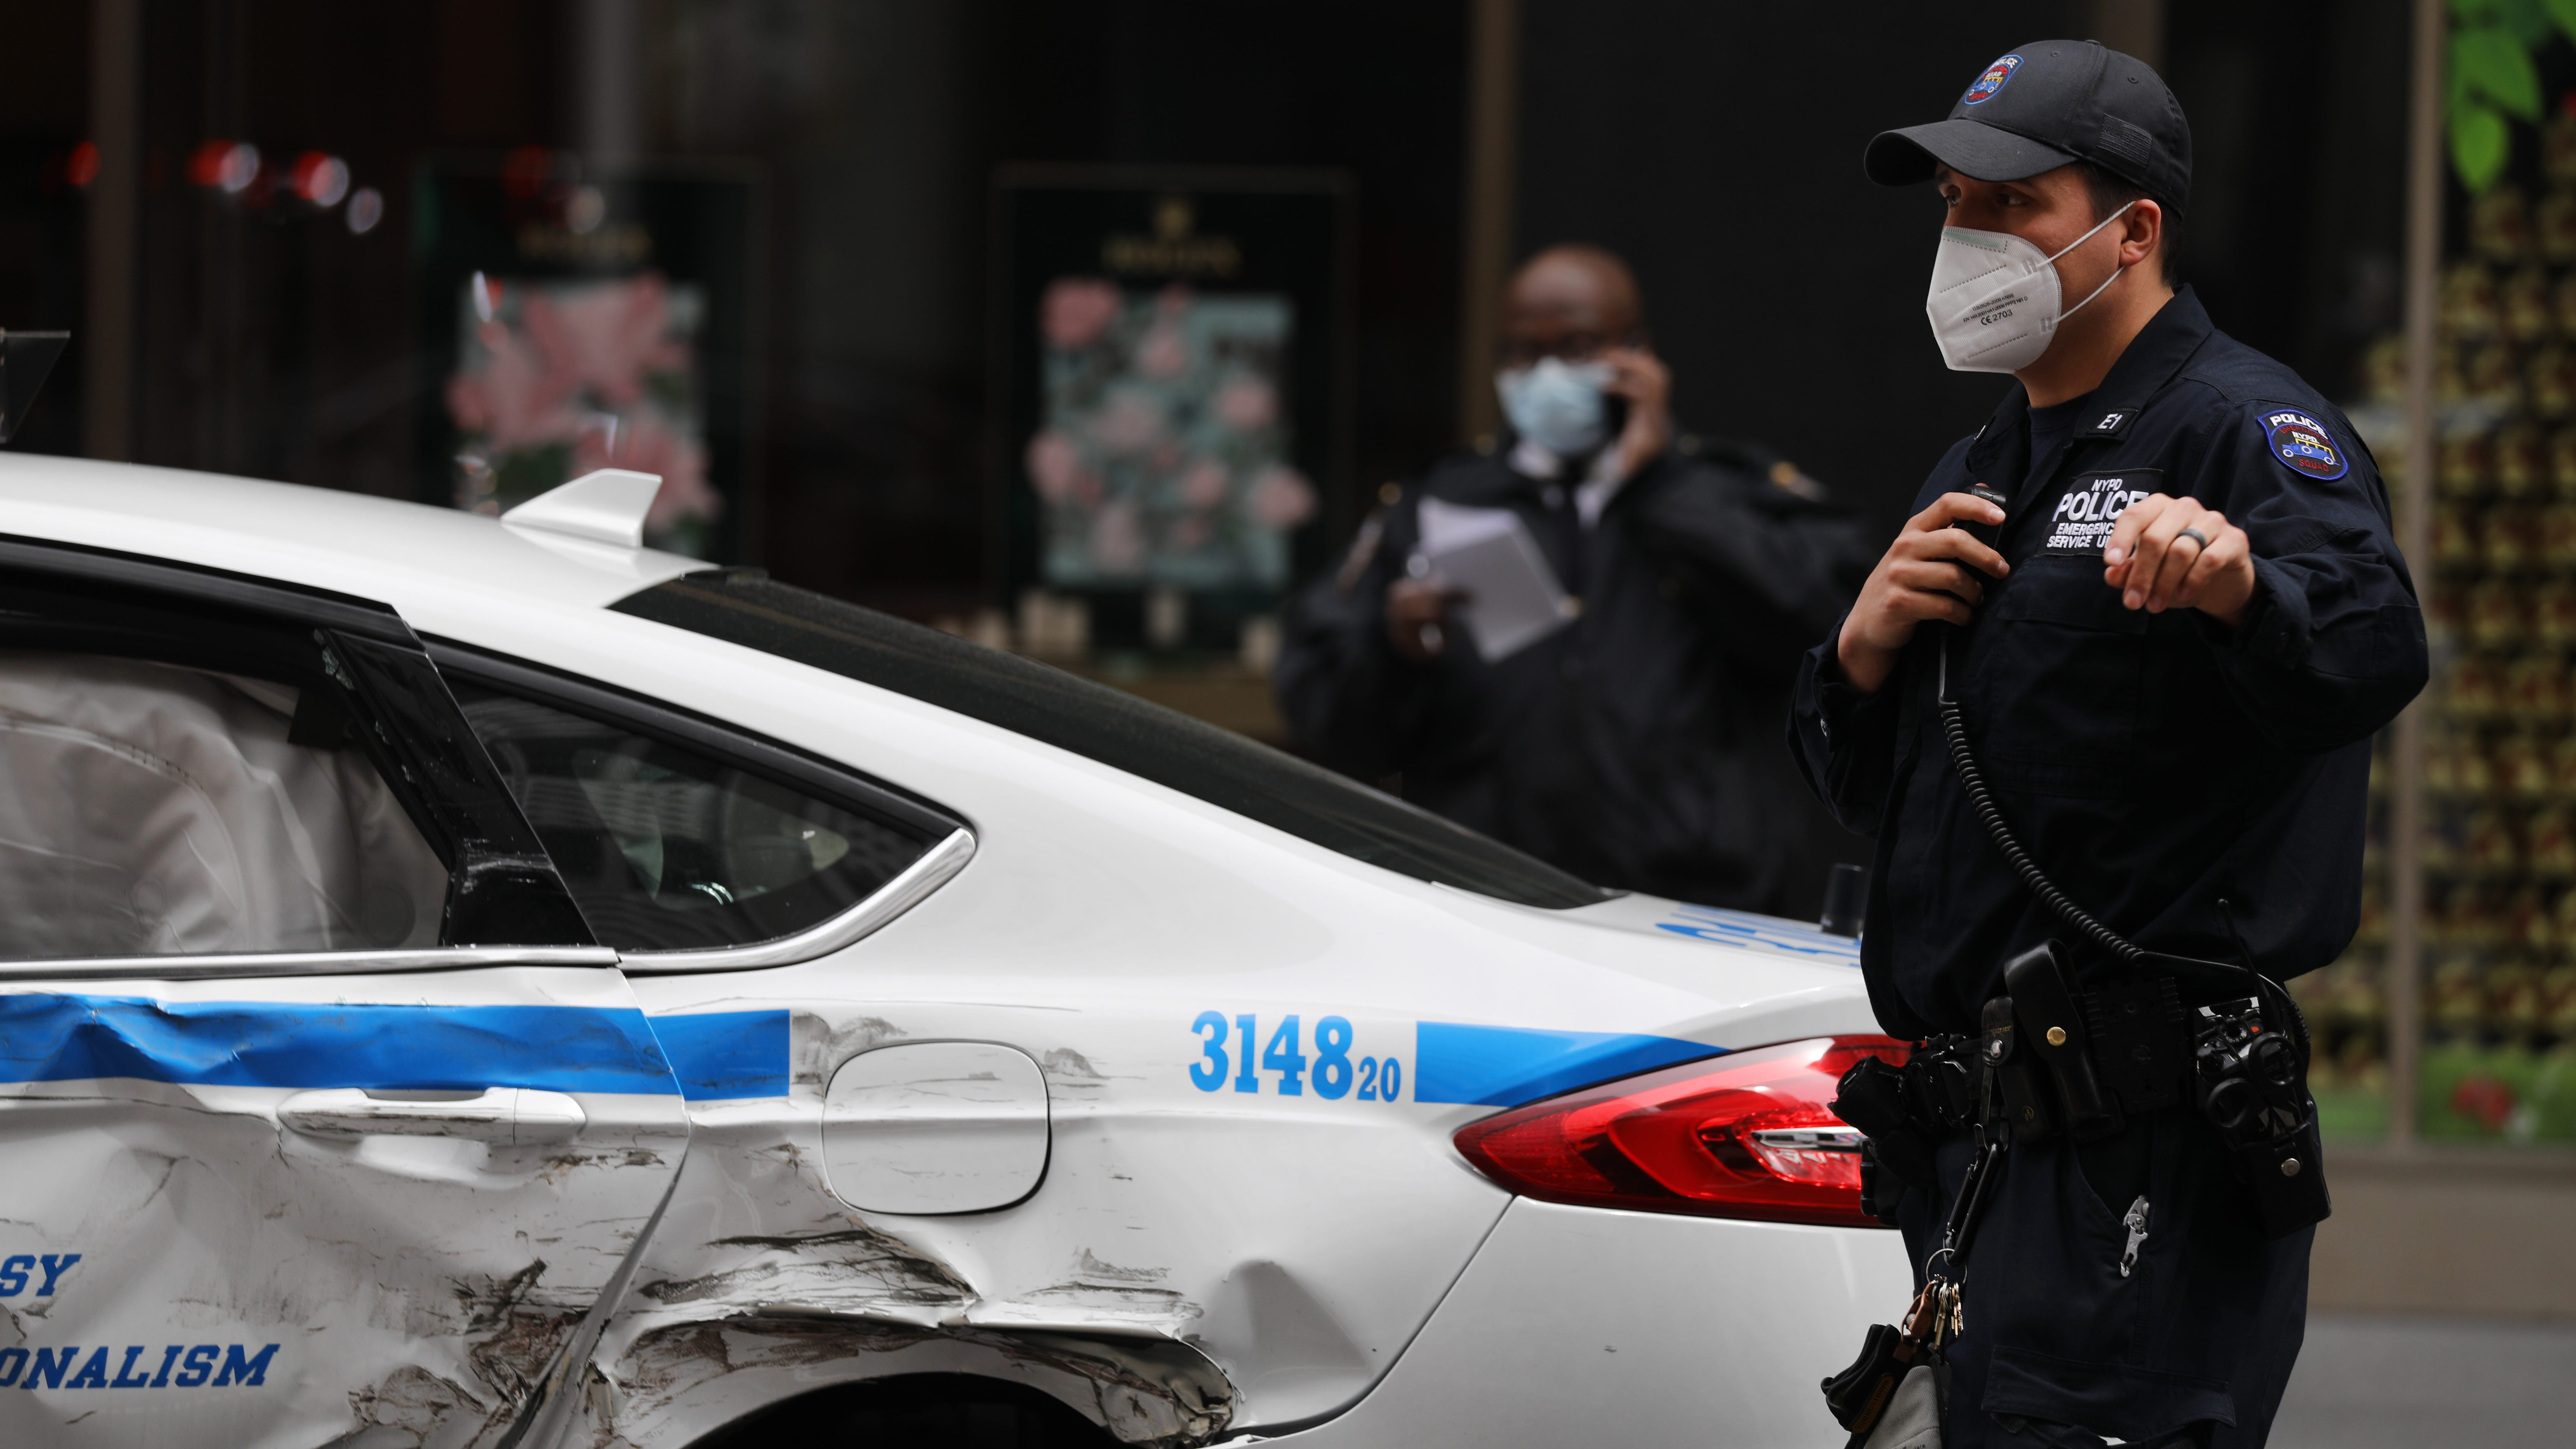 Unvaccinated NYPD officers must wear masks or face 'disciplinary action': report